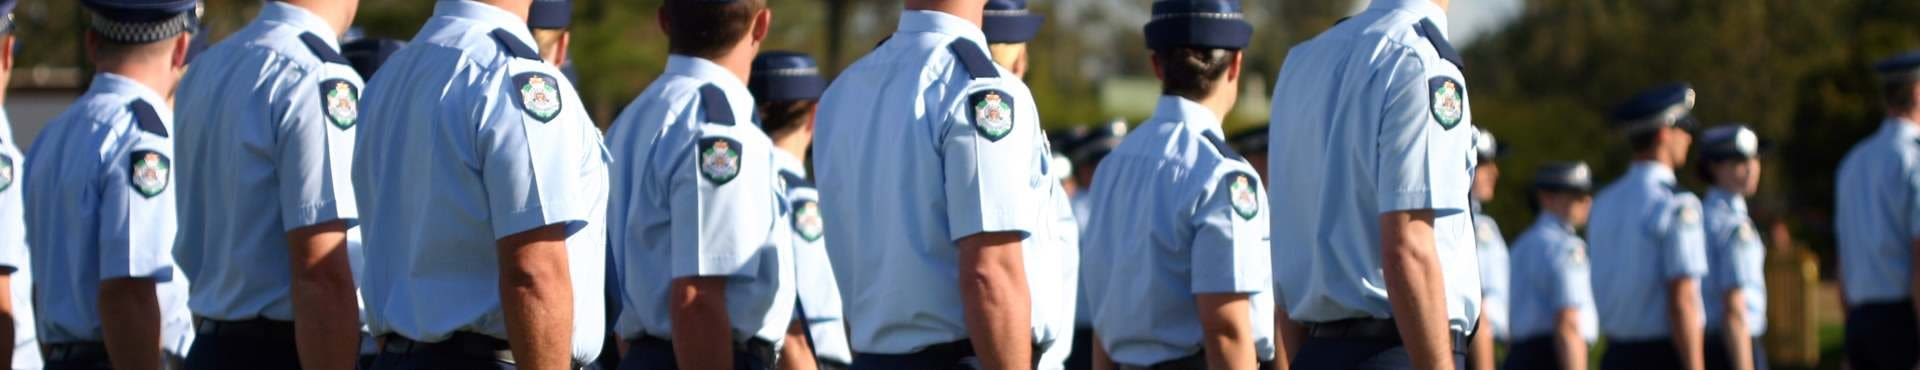 Shine Lawyers | Australian police officers | Shine Lawyers